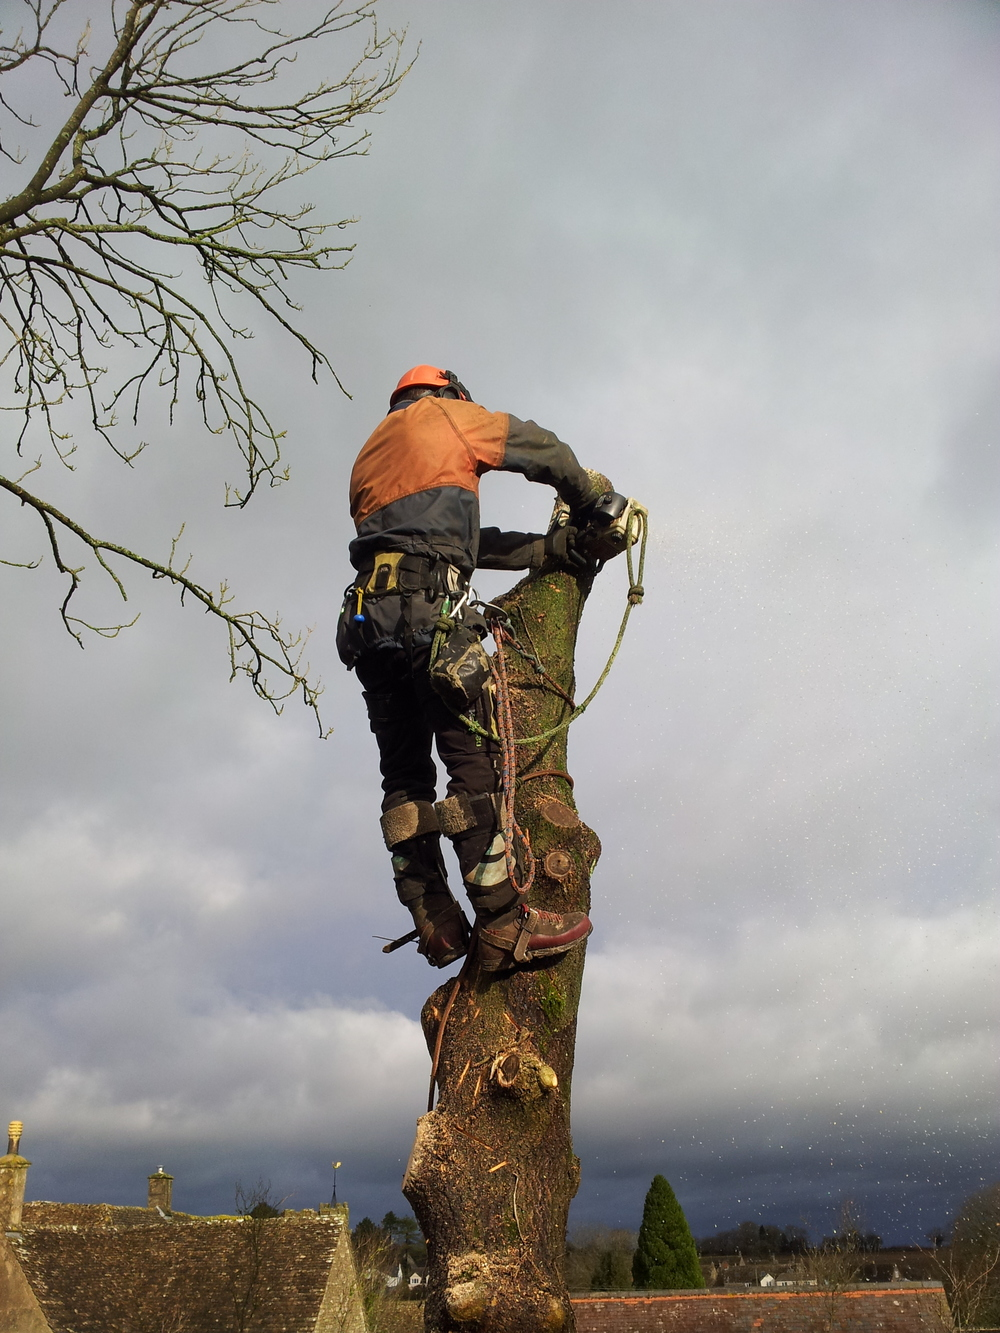 EcoCon offer a full range of tree surgery services to our clients.